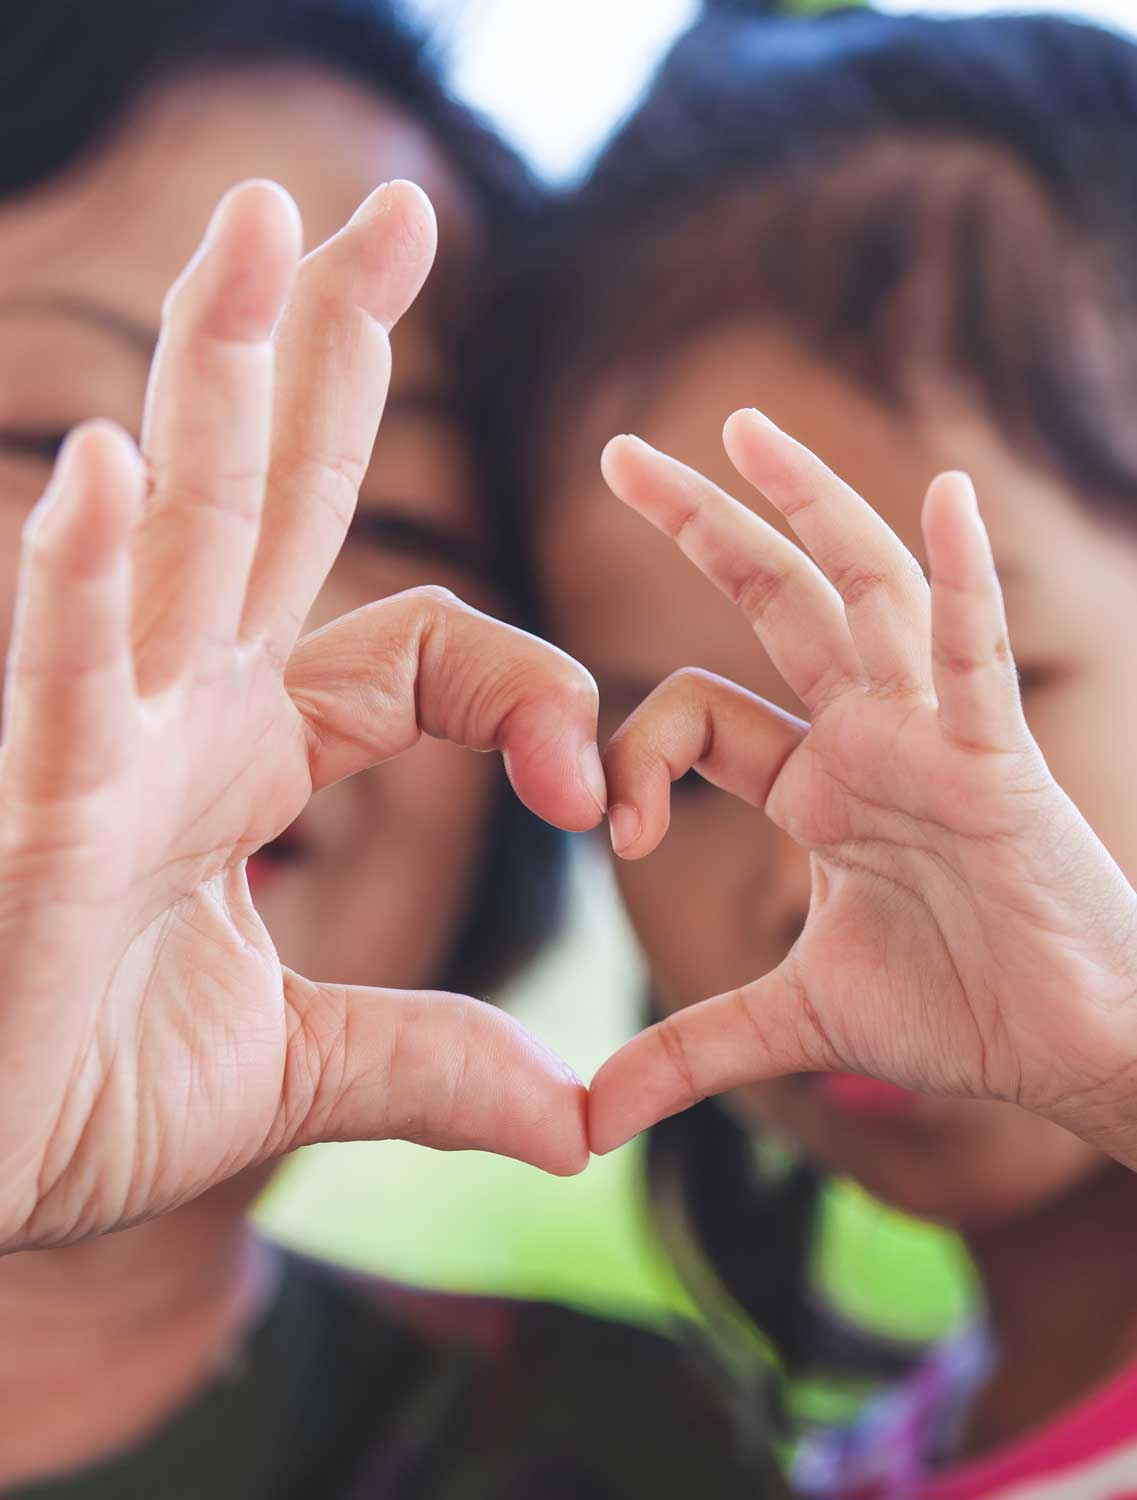 Mother and Child, Fingers Making a Heart – Help Me Grow NY